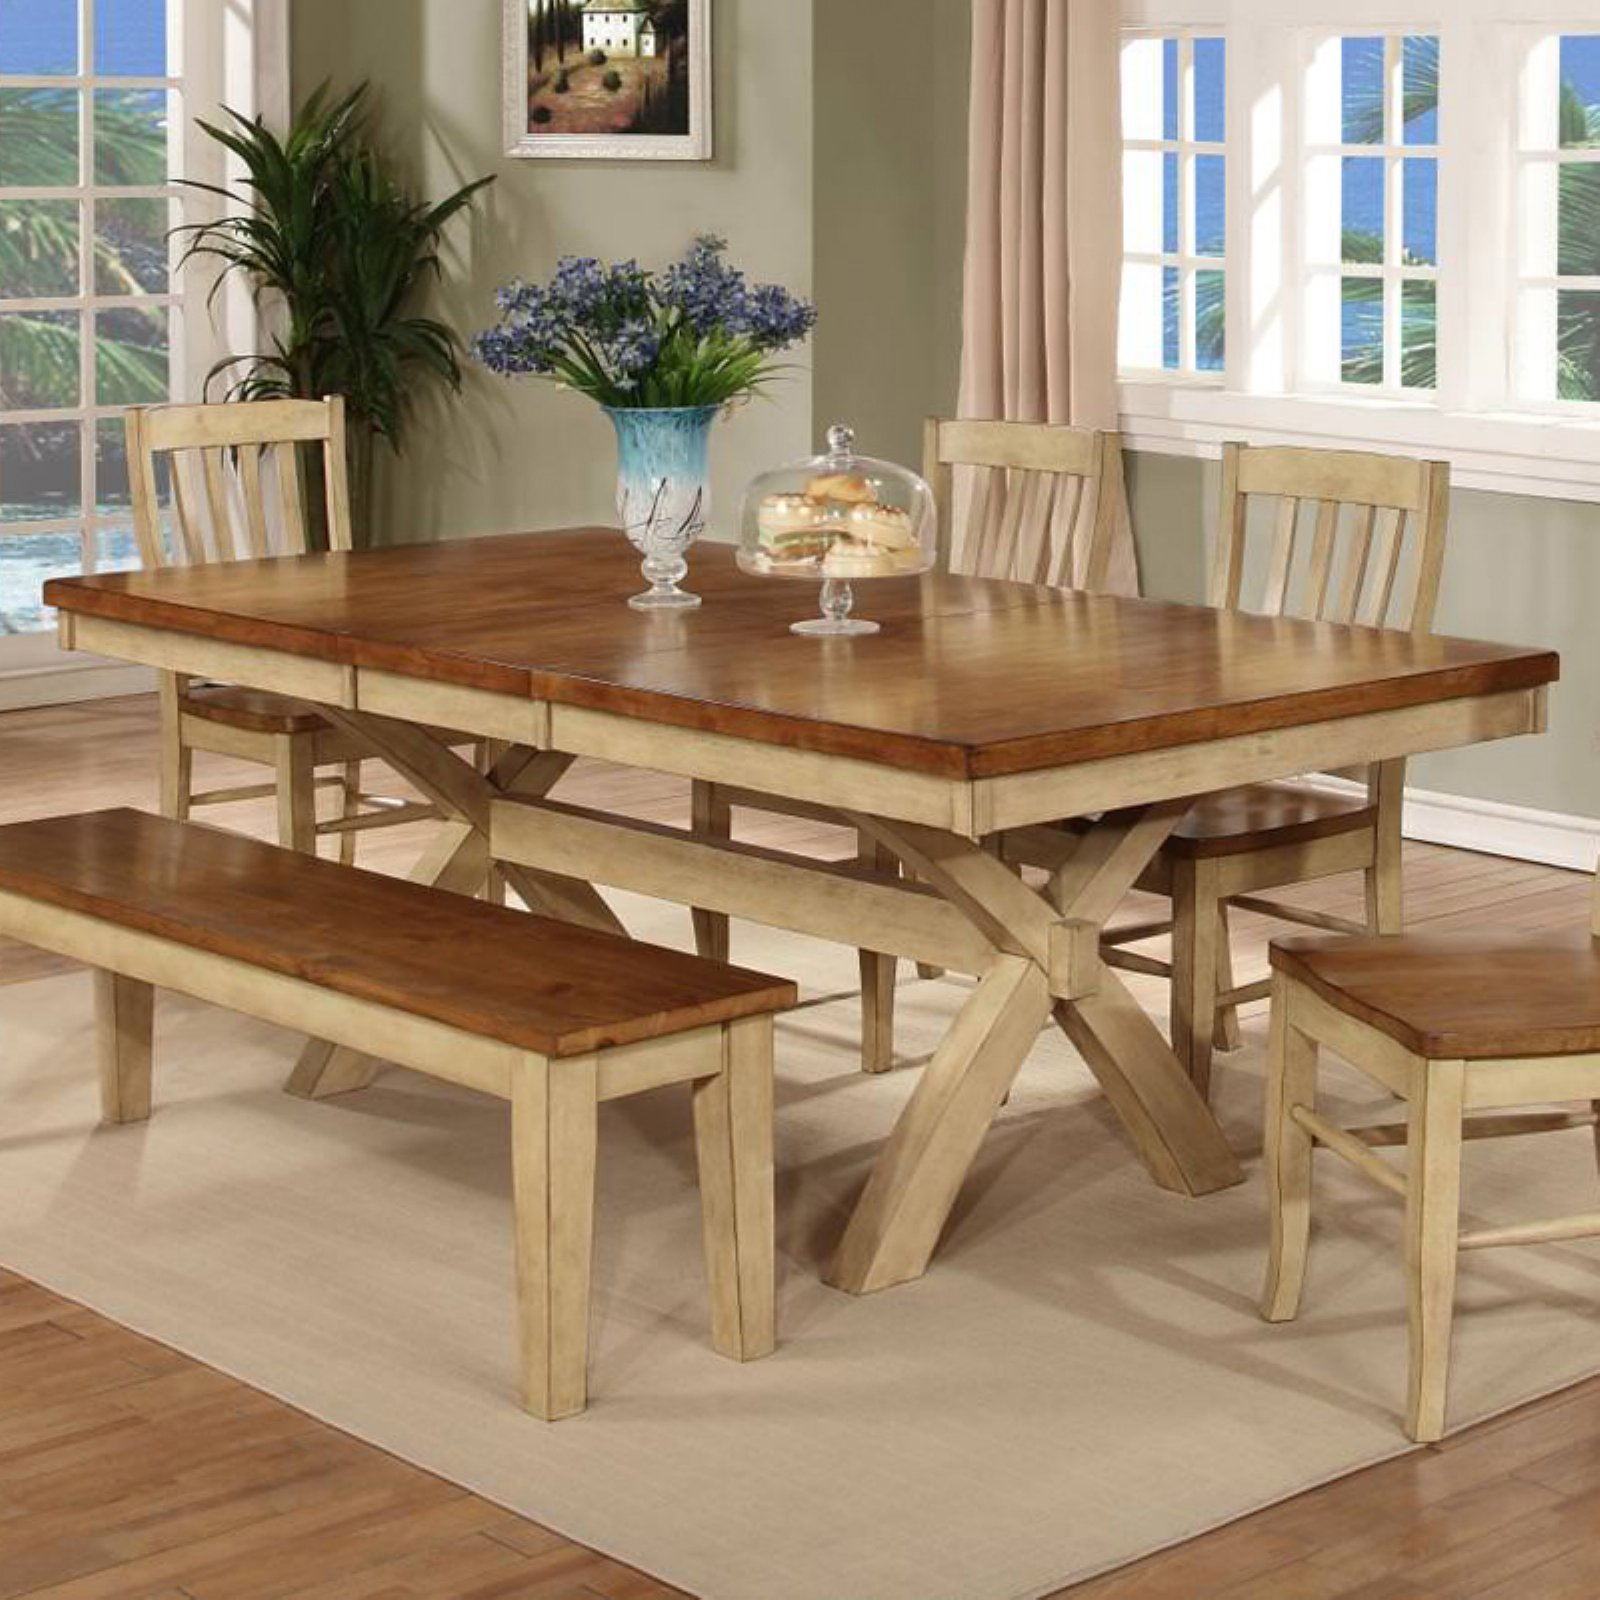 Chelsea Home Vail Rectangular Dining Table